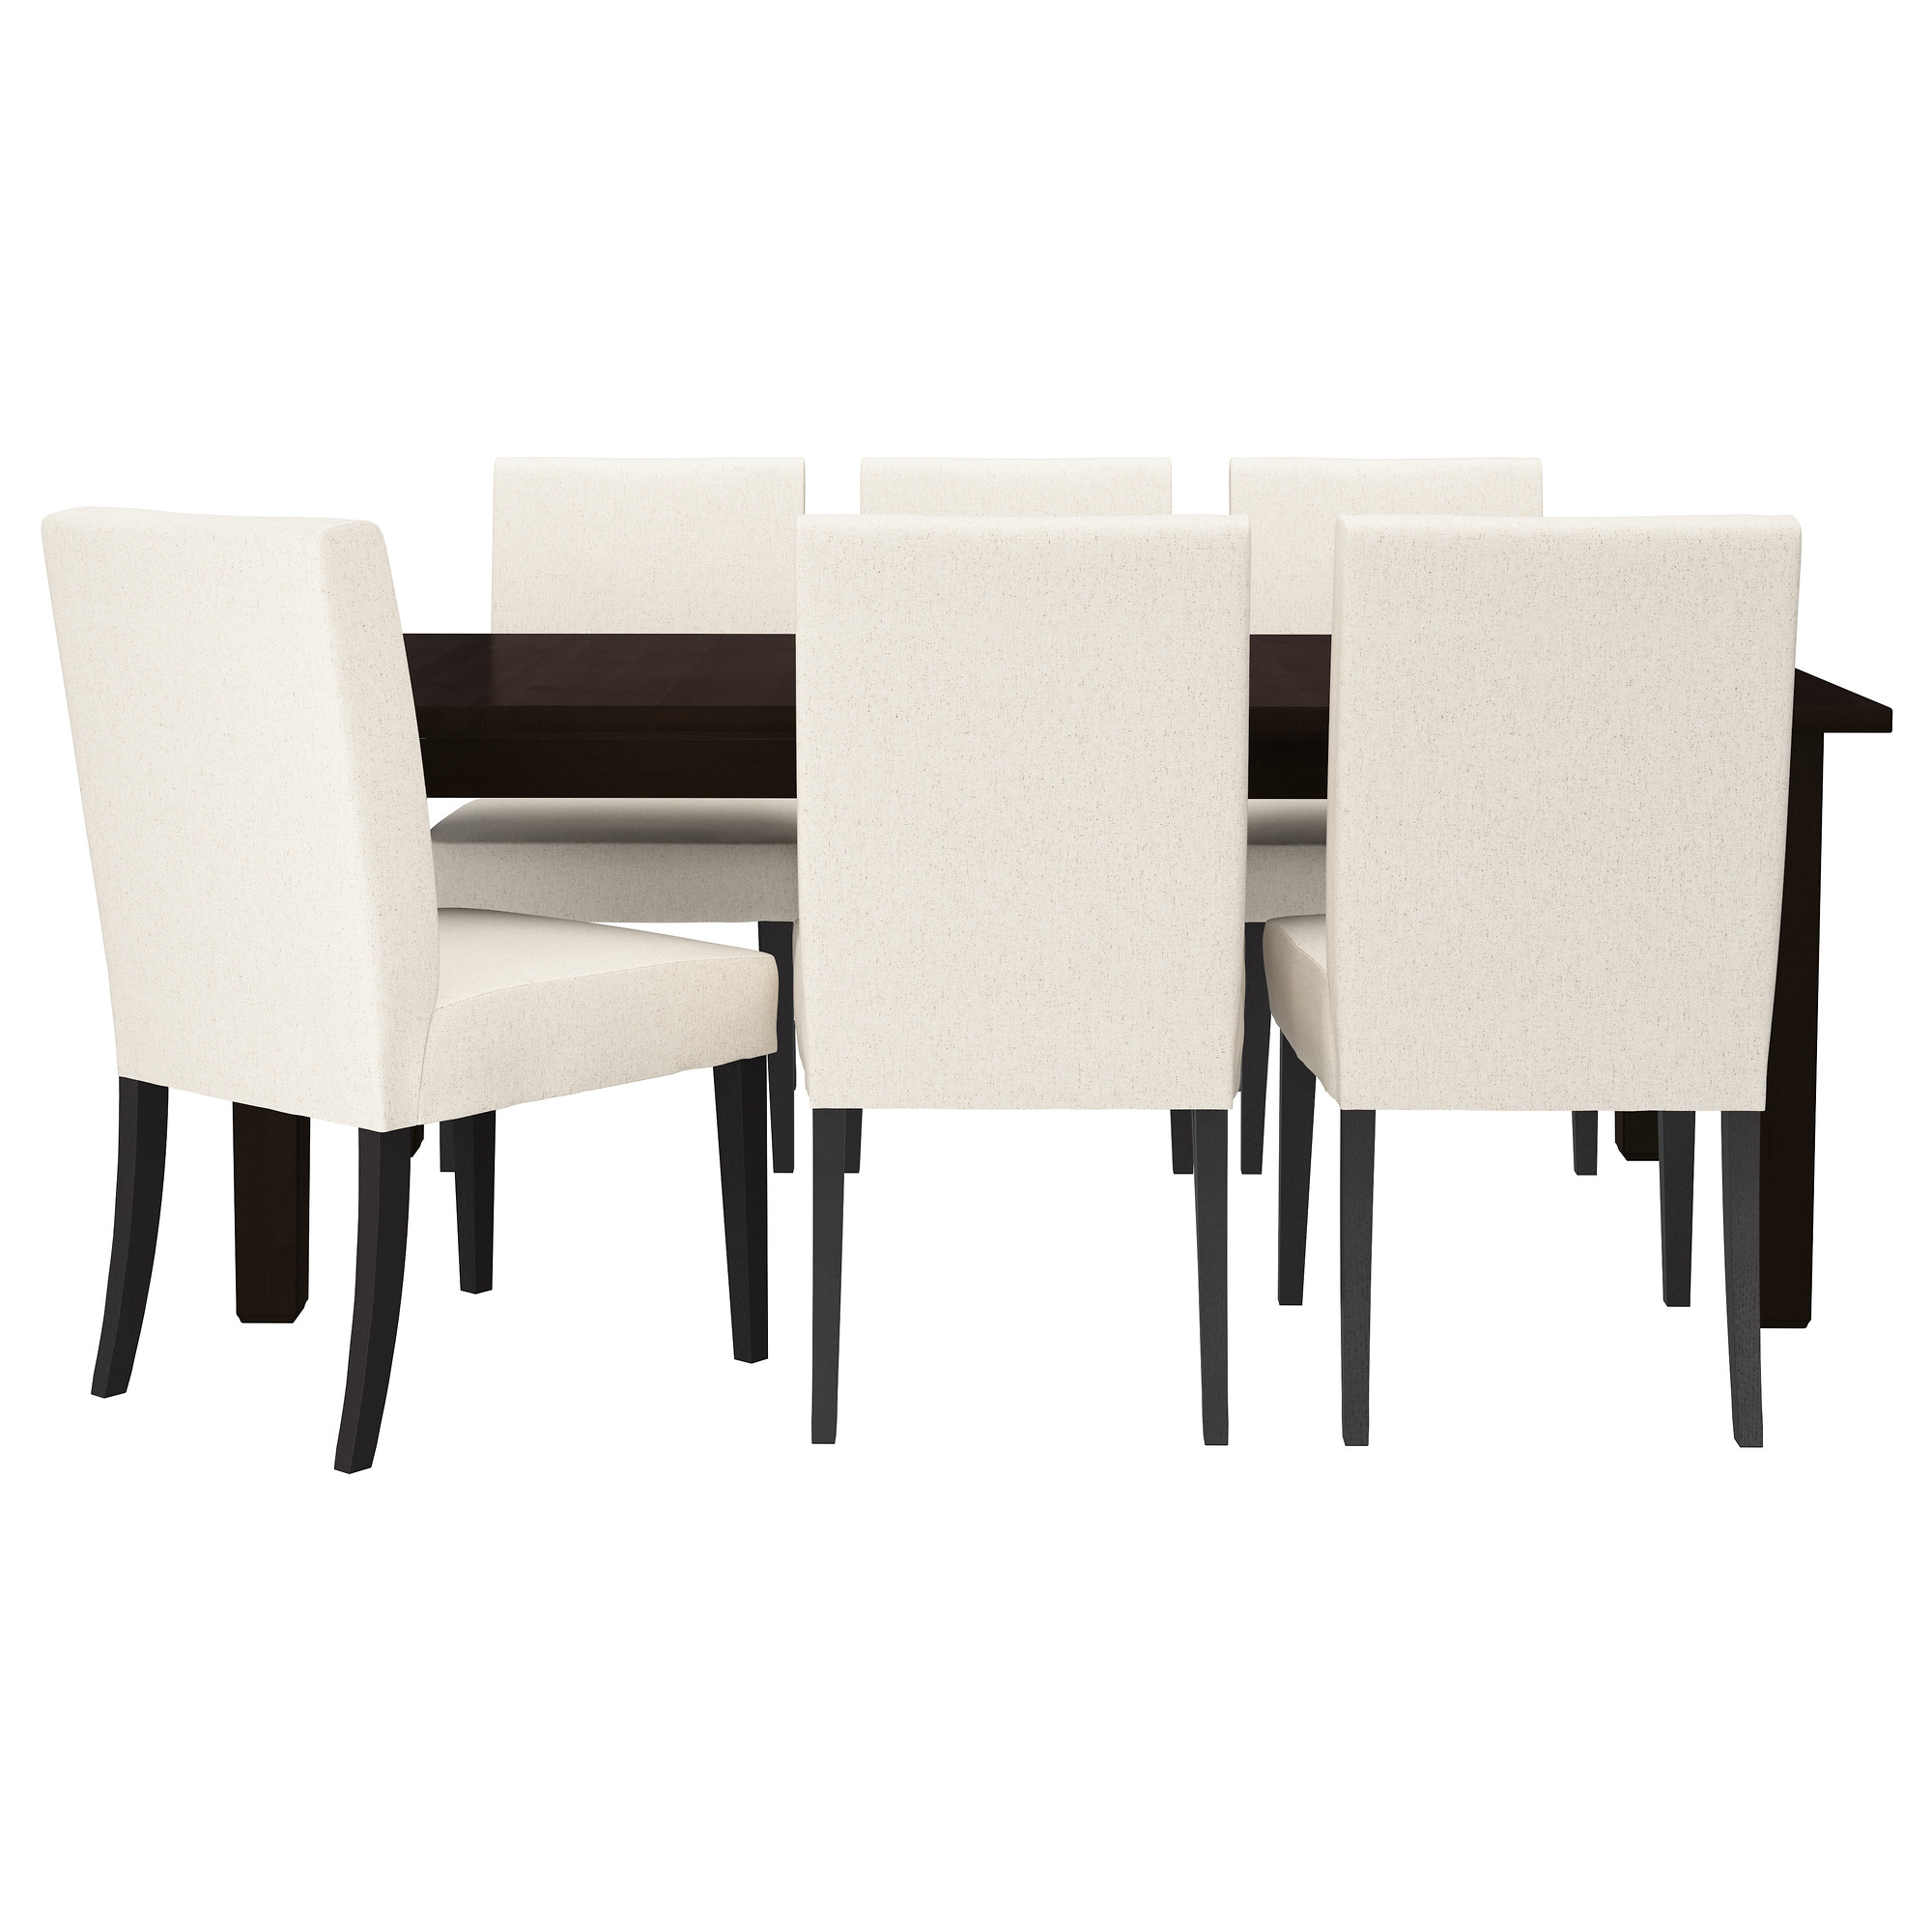 STORNÄS / HENRIKSDAL Table And 6 Chairs, Brown Black, Linneryd Natural  Length: